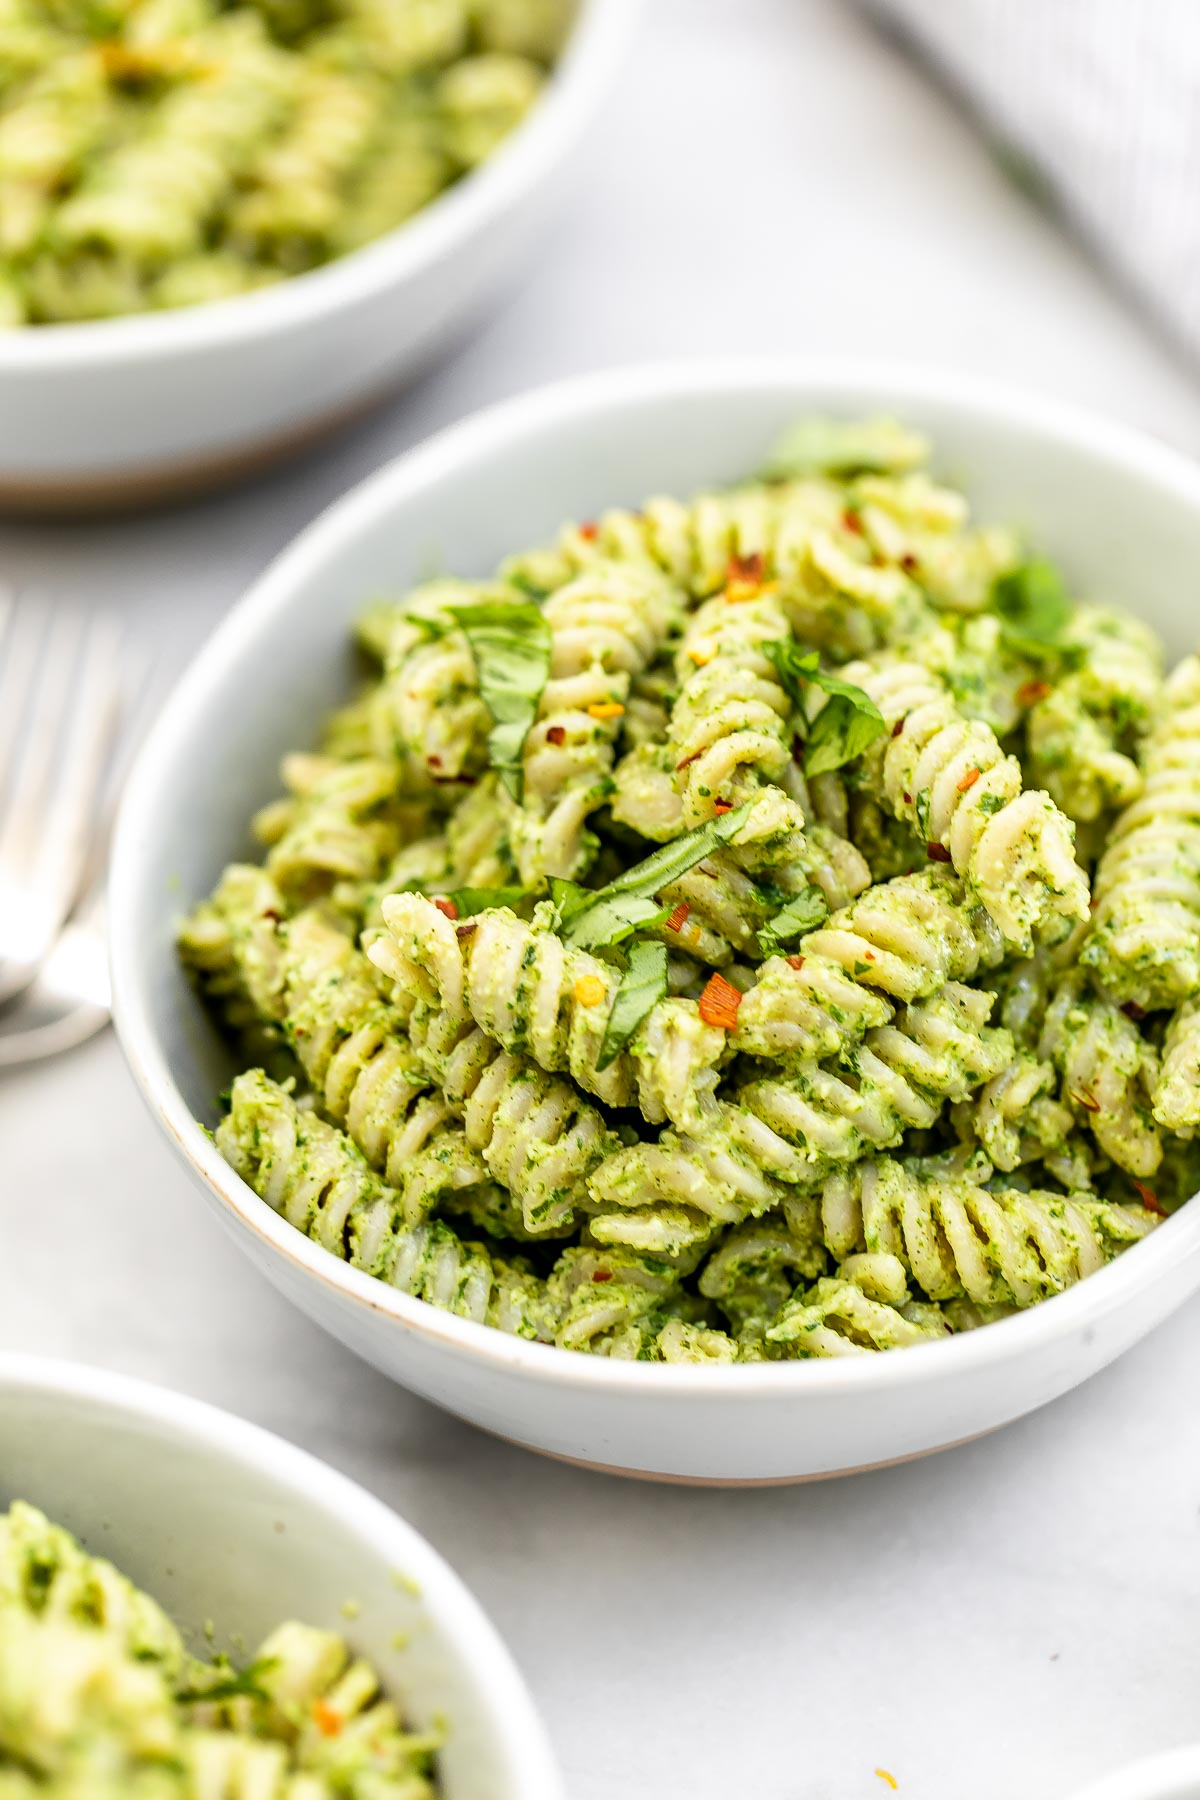 Angled view of vegan nut free pesto pastas.